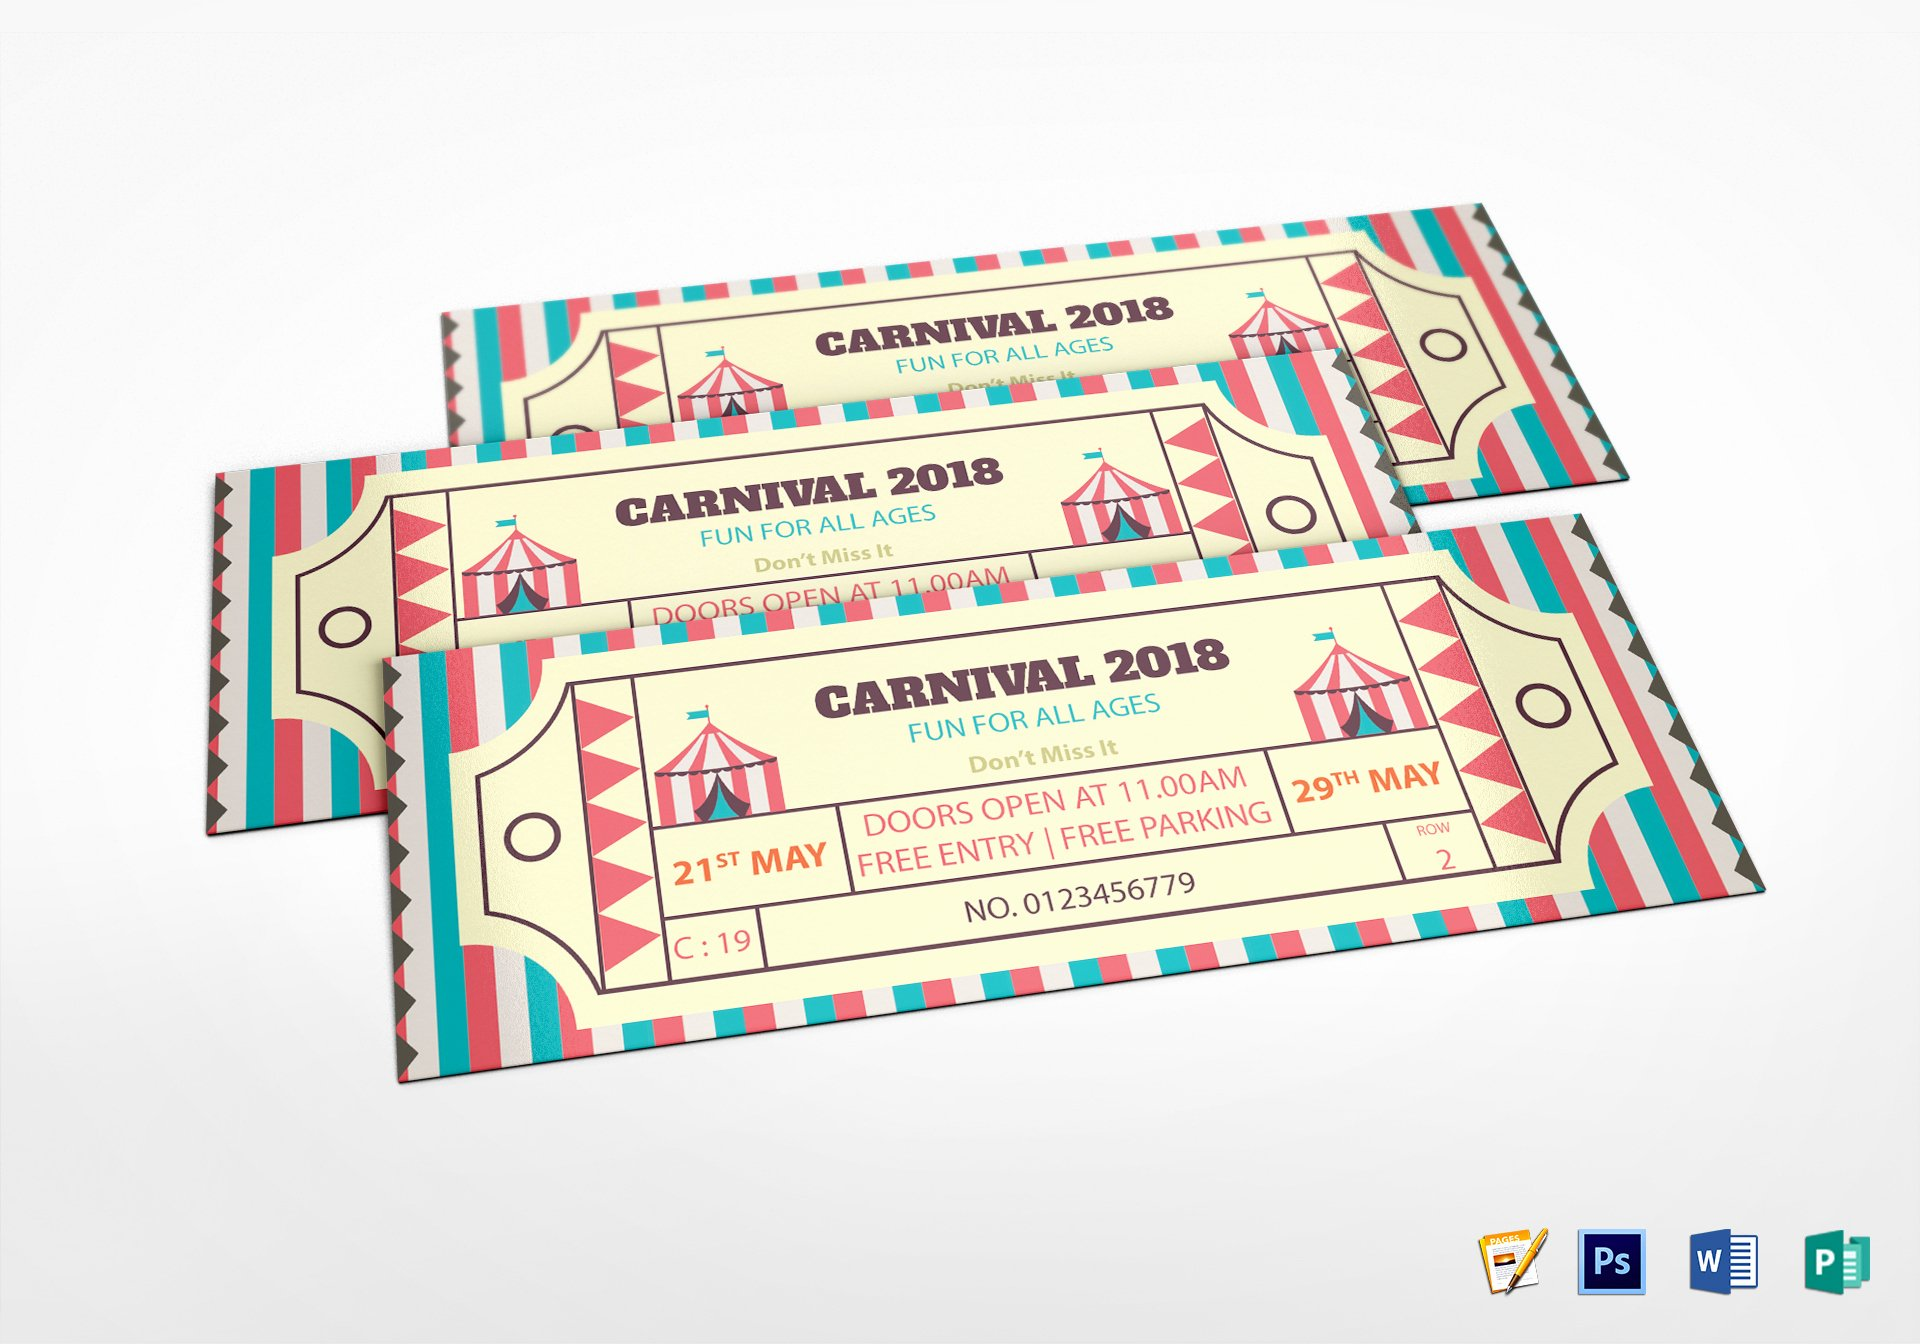 Carnival Ticket Template Elegant Simple Carnival Ticket Design Template In Word Psd Pages